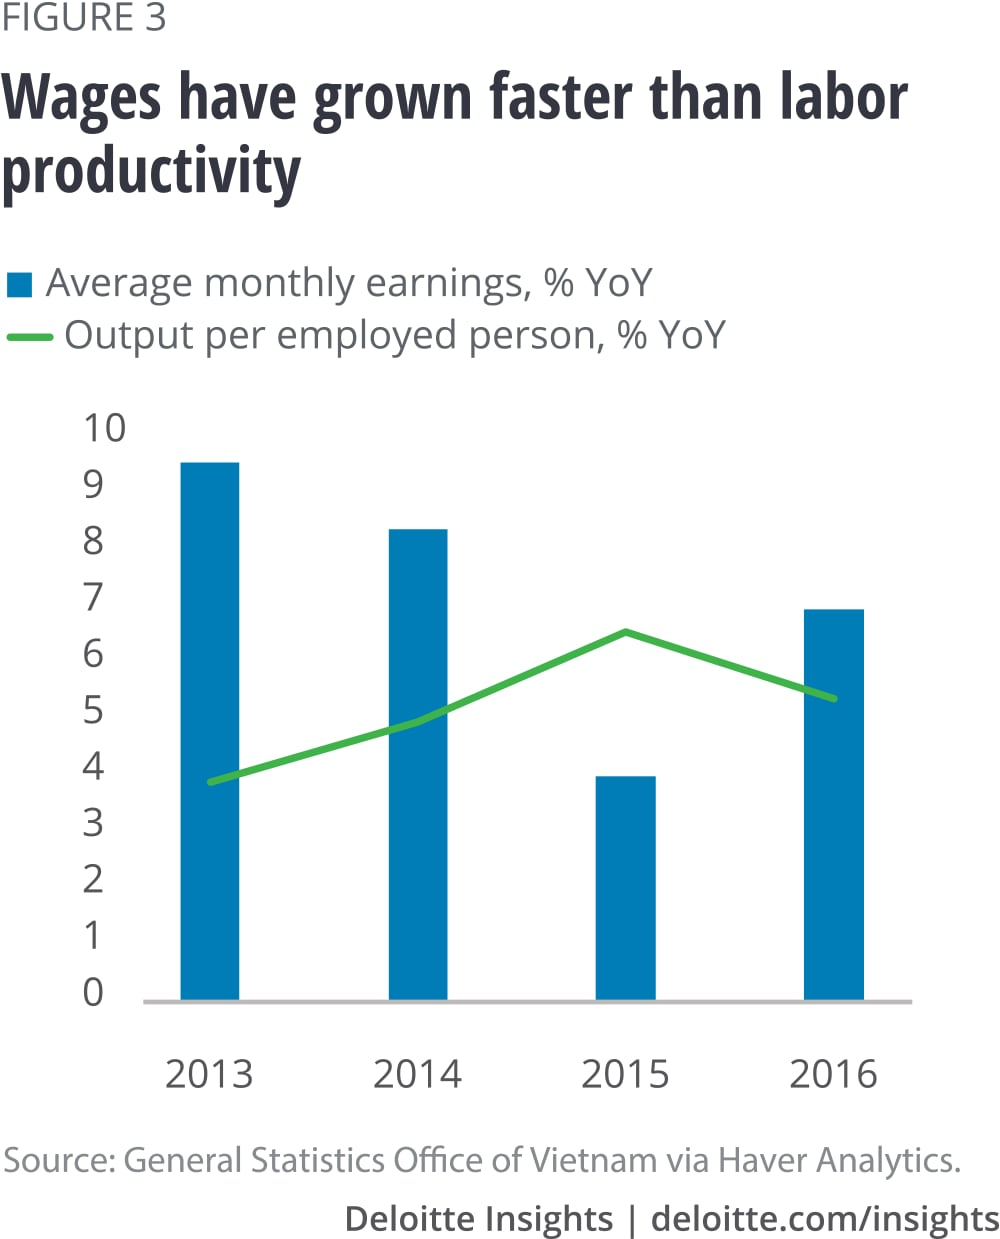 Wages have grown faster than labor productivity